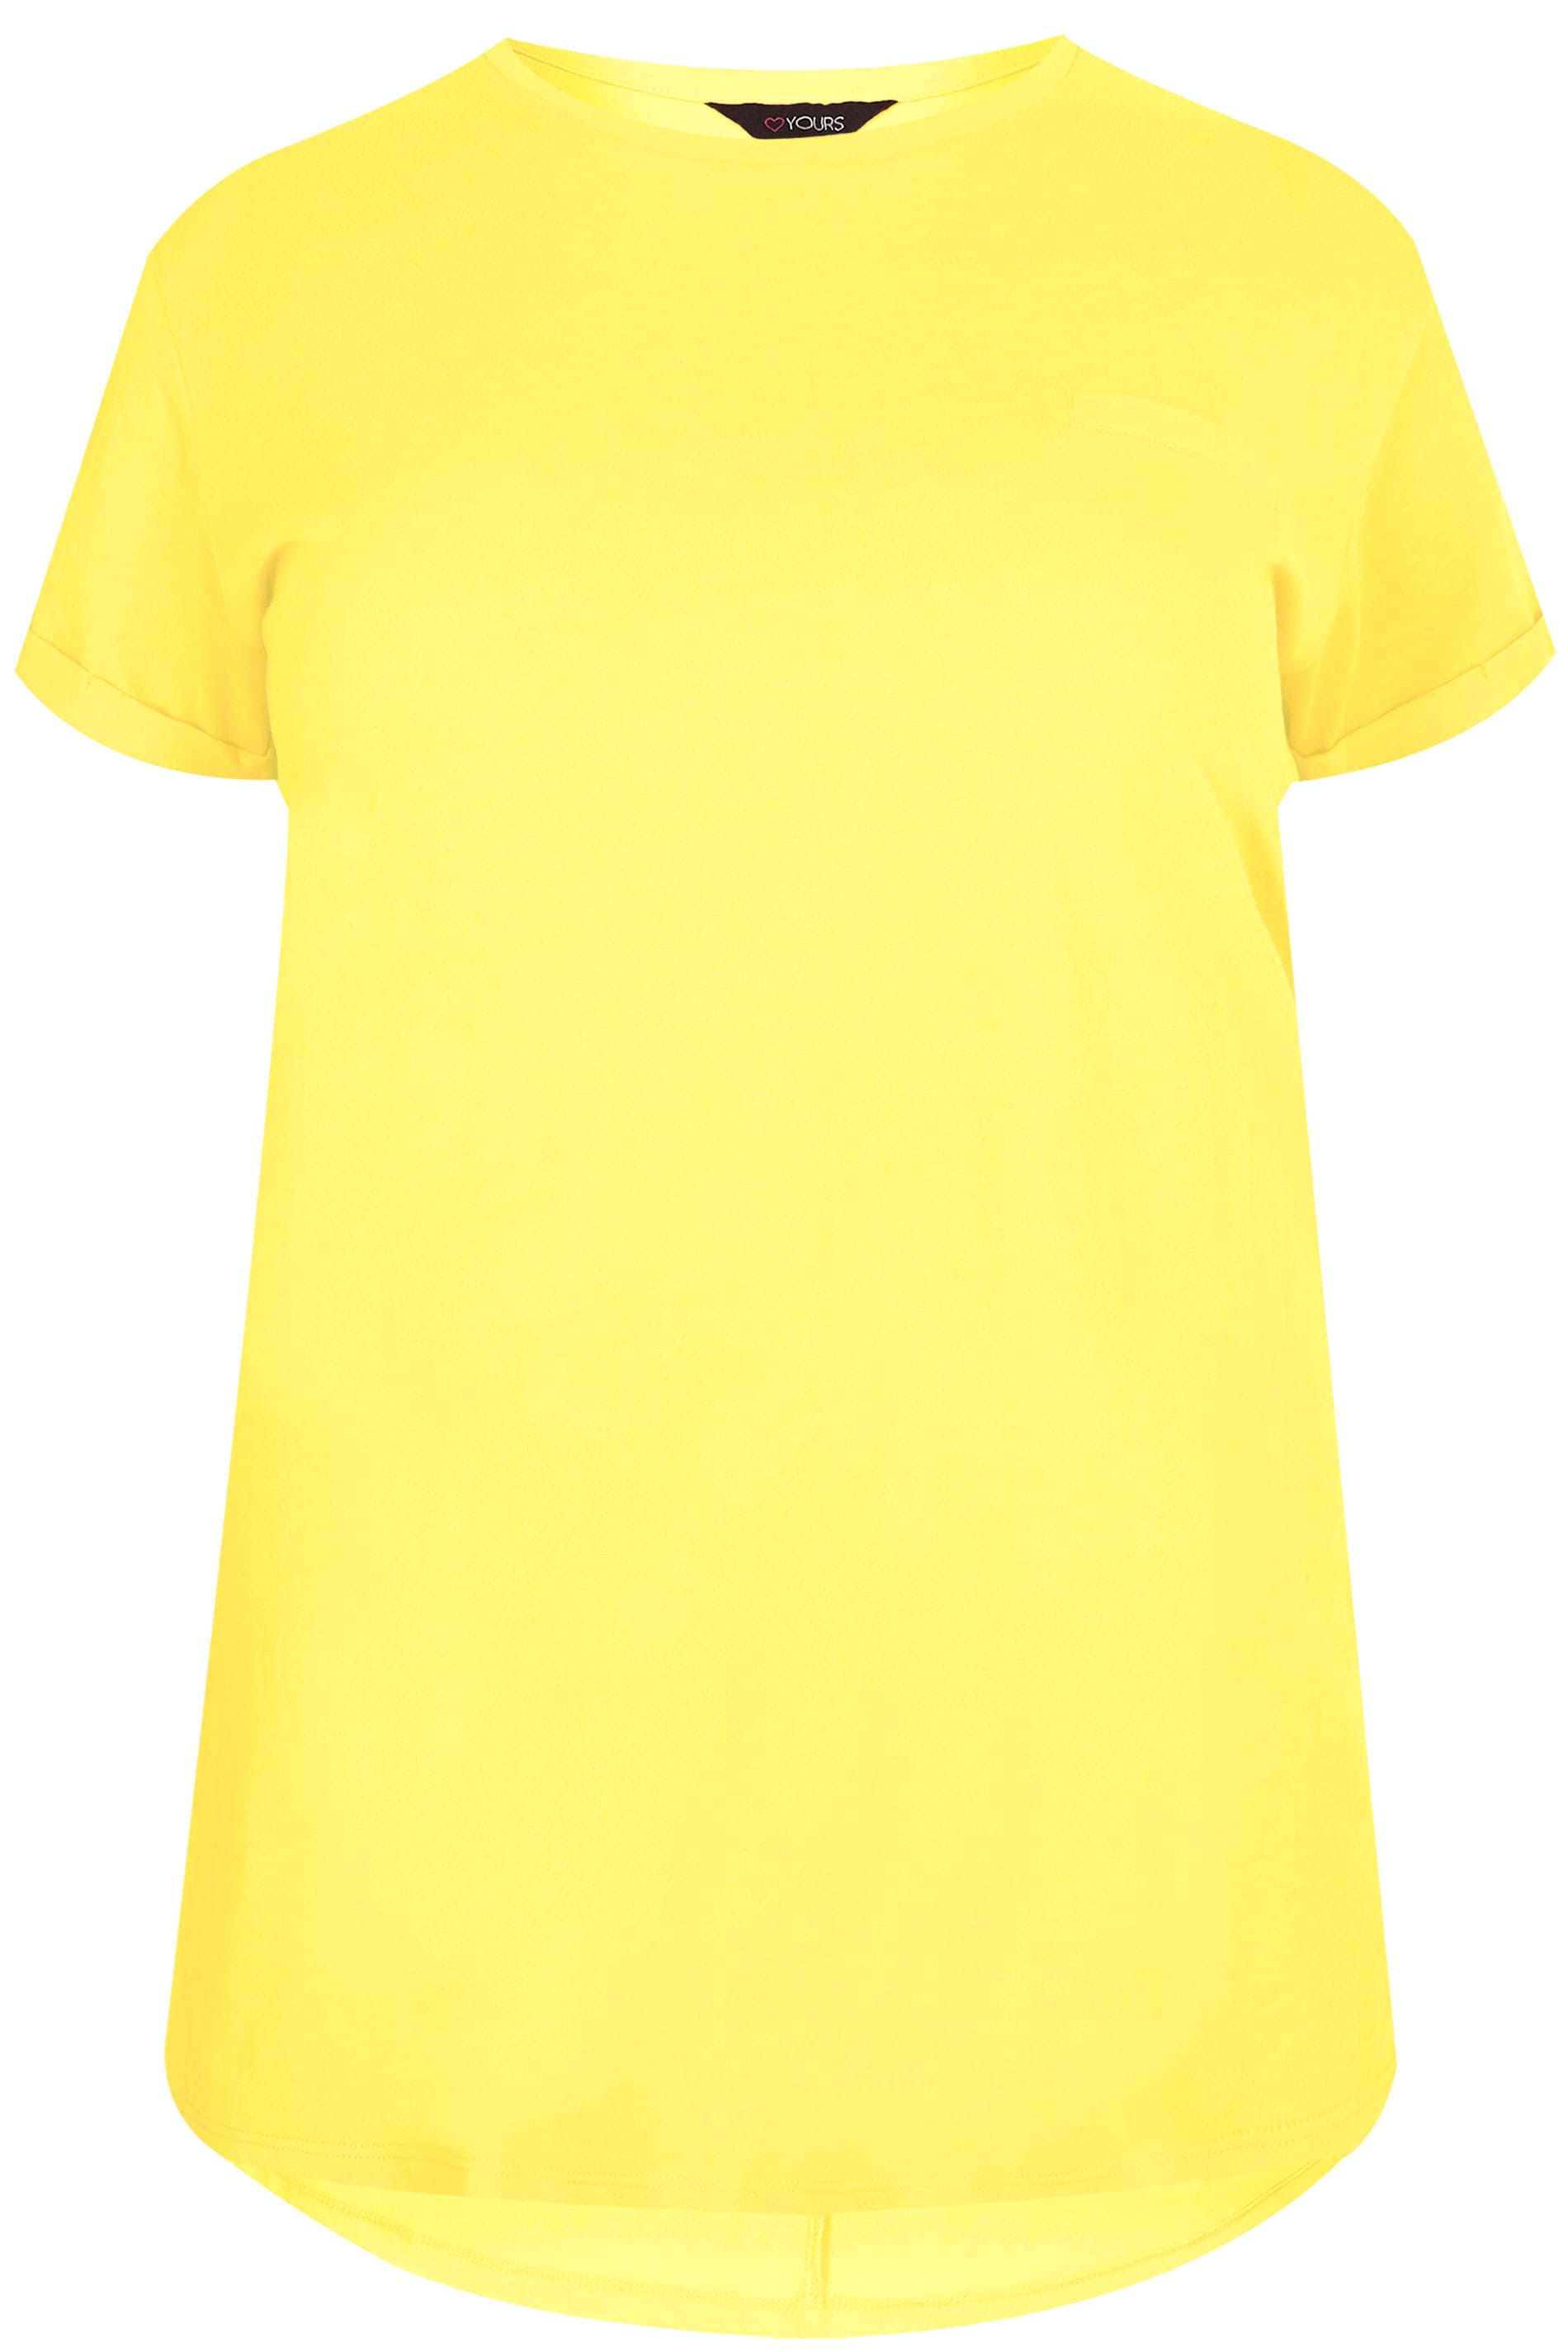 yellow mock pocket t shirt plus sizes 16 to 36 yours clothing. Black Bedroom Furniture Sets. Home Design Ideas